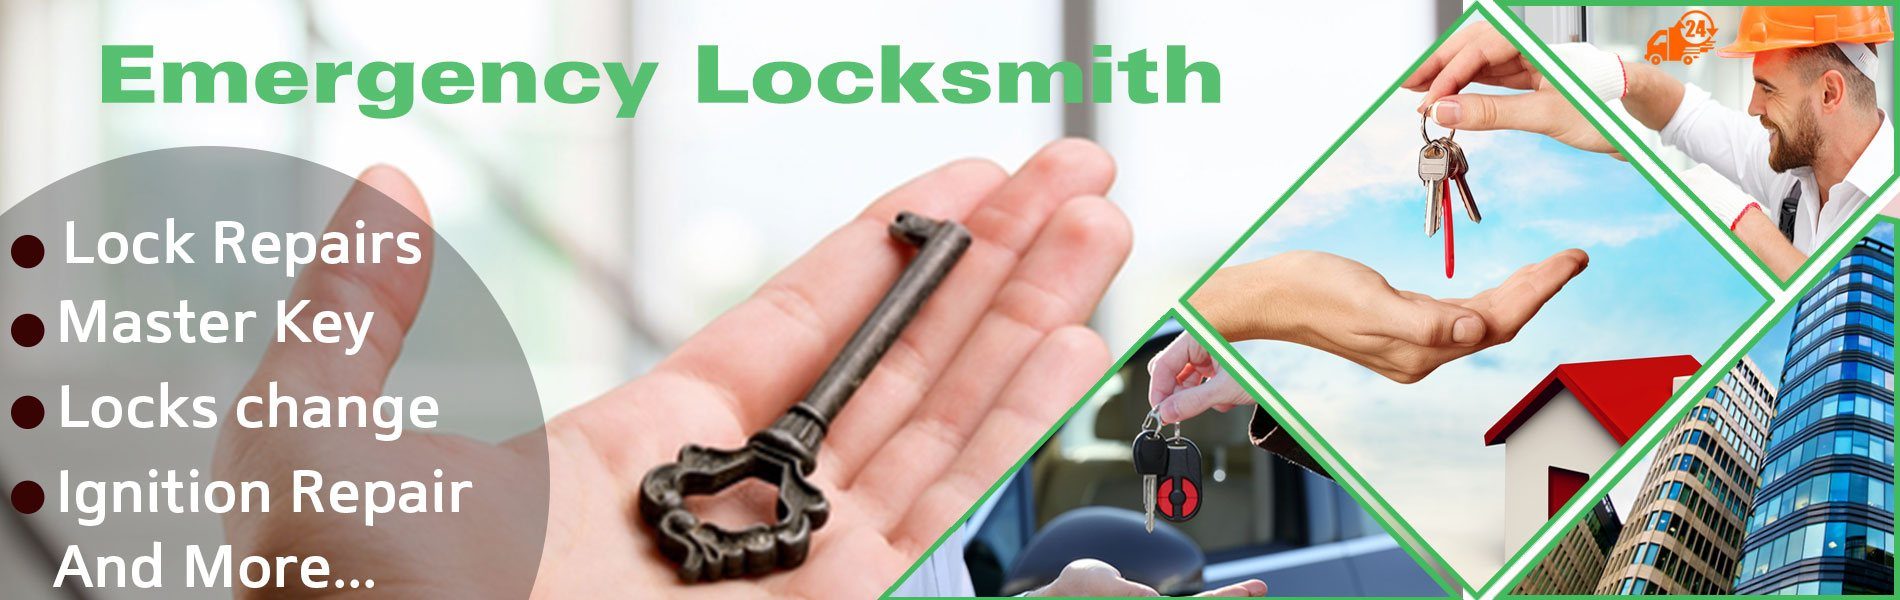 Lock Safe Services Indianapolis, IN 317-975-2289